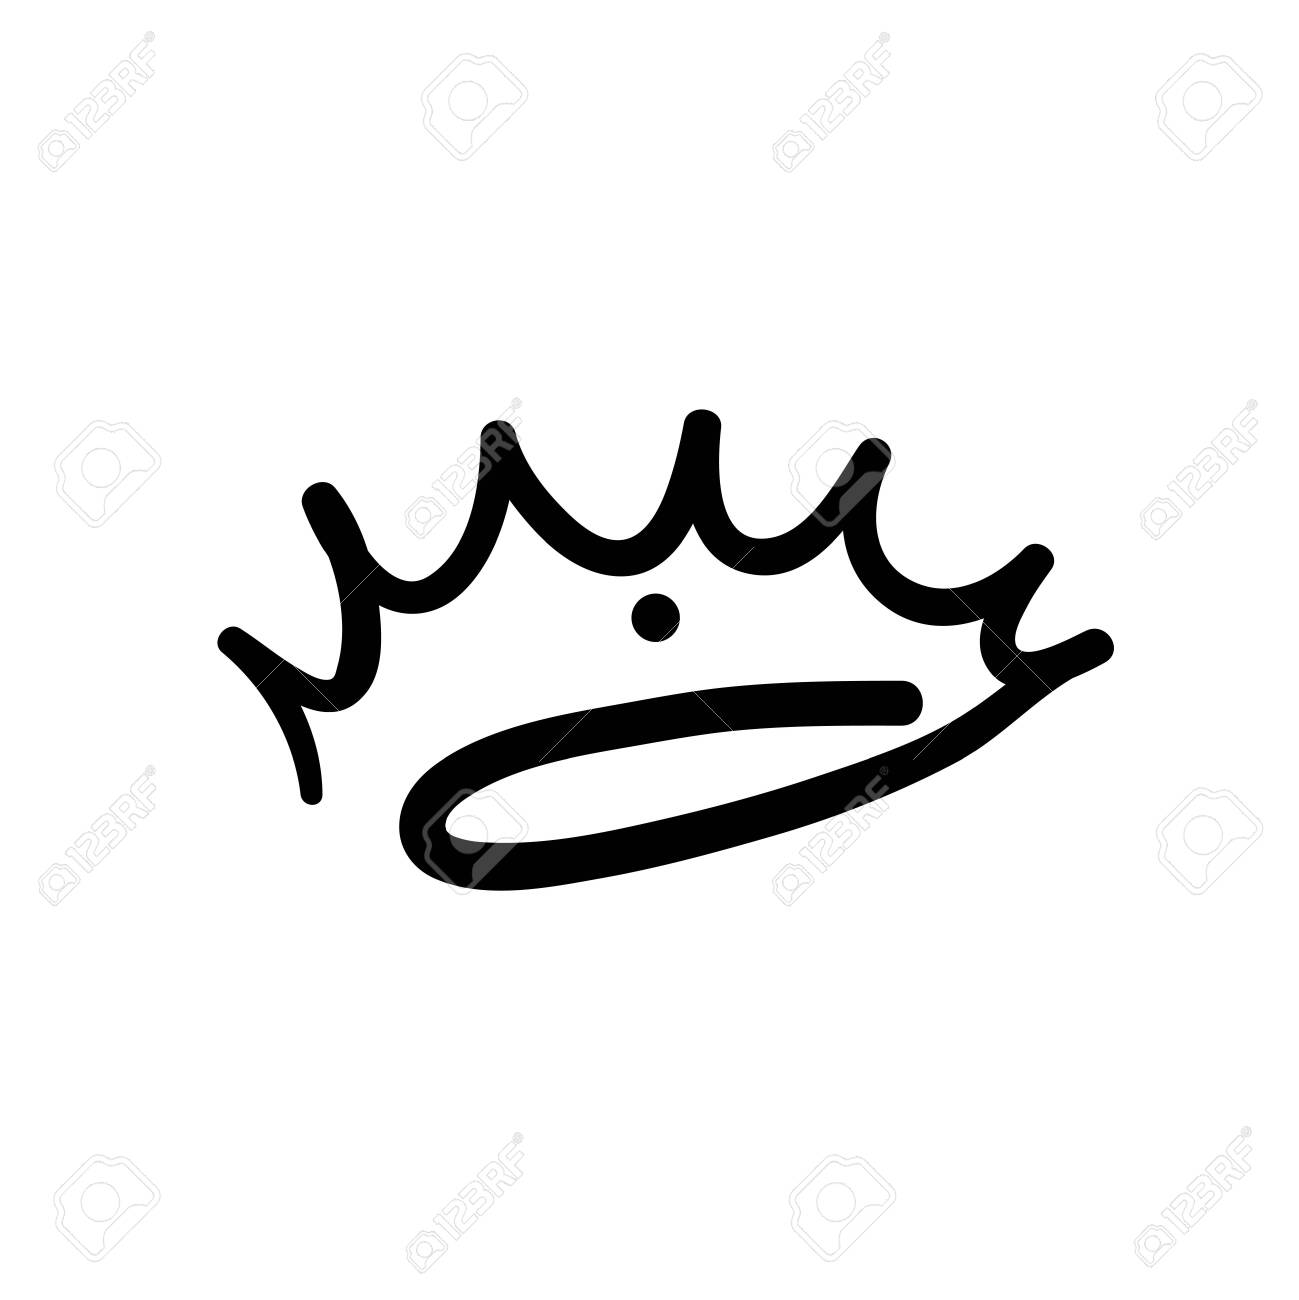 Cartoon Crown Graffiti – Crown graffiti free vector we have about (1,194 files) free vector in ai, eps, cdr, svg vector illustration graphic art design format.